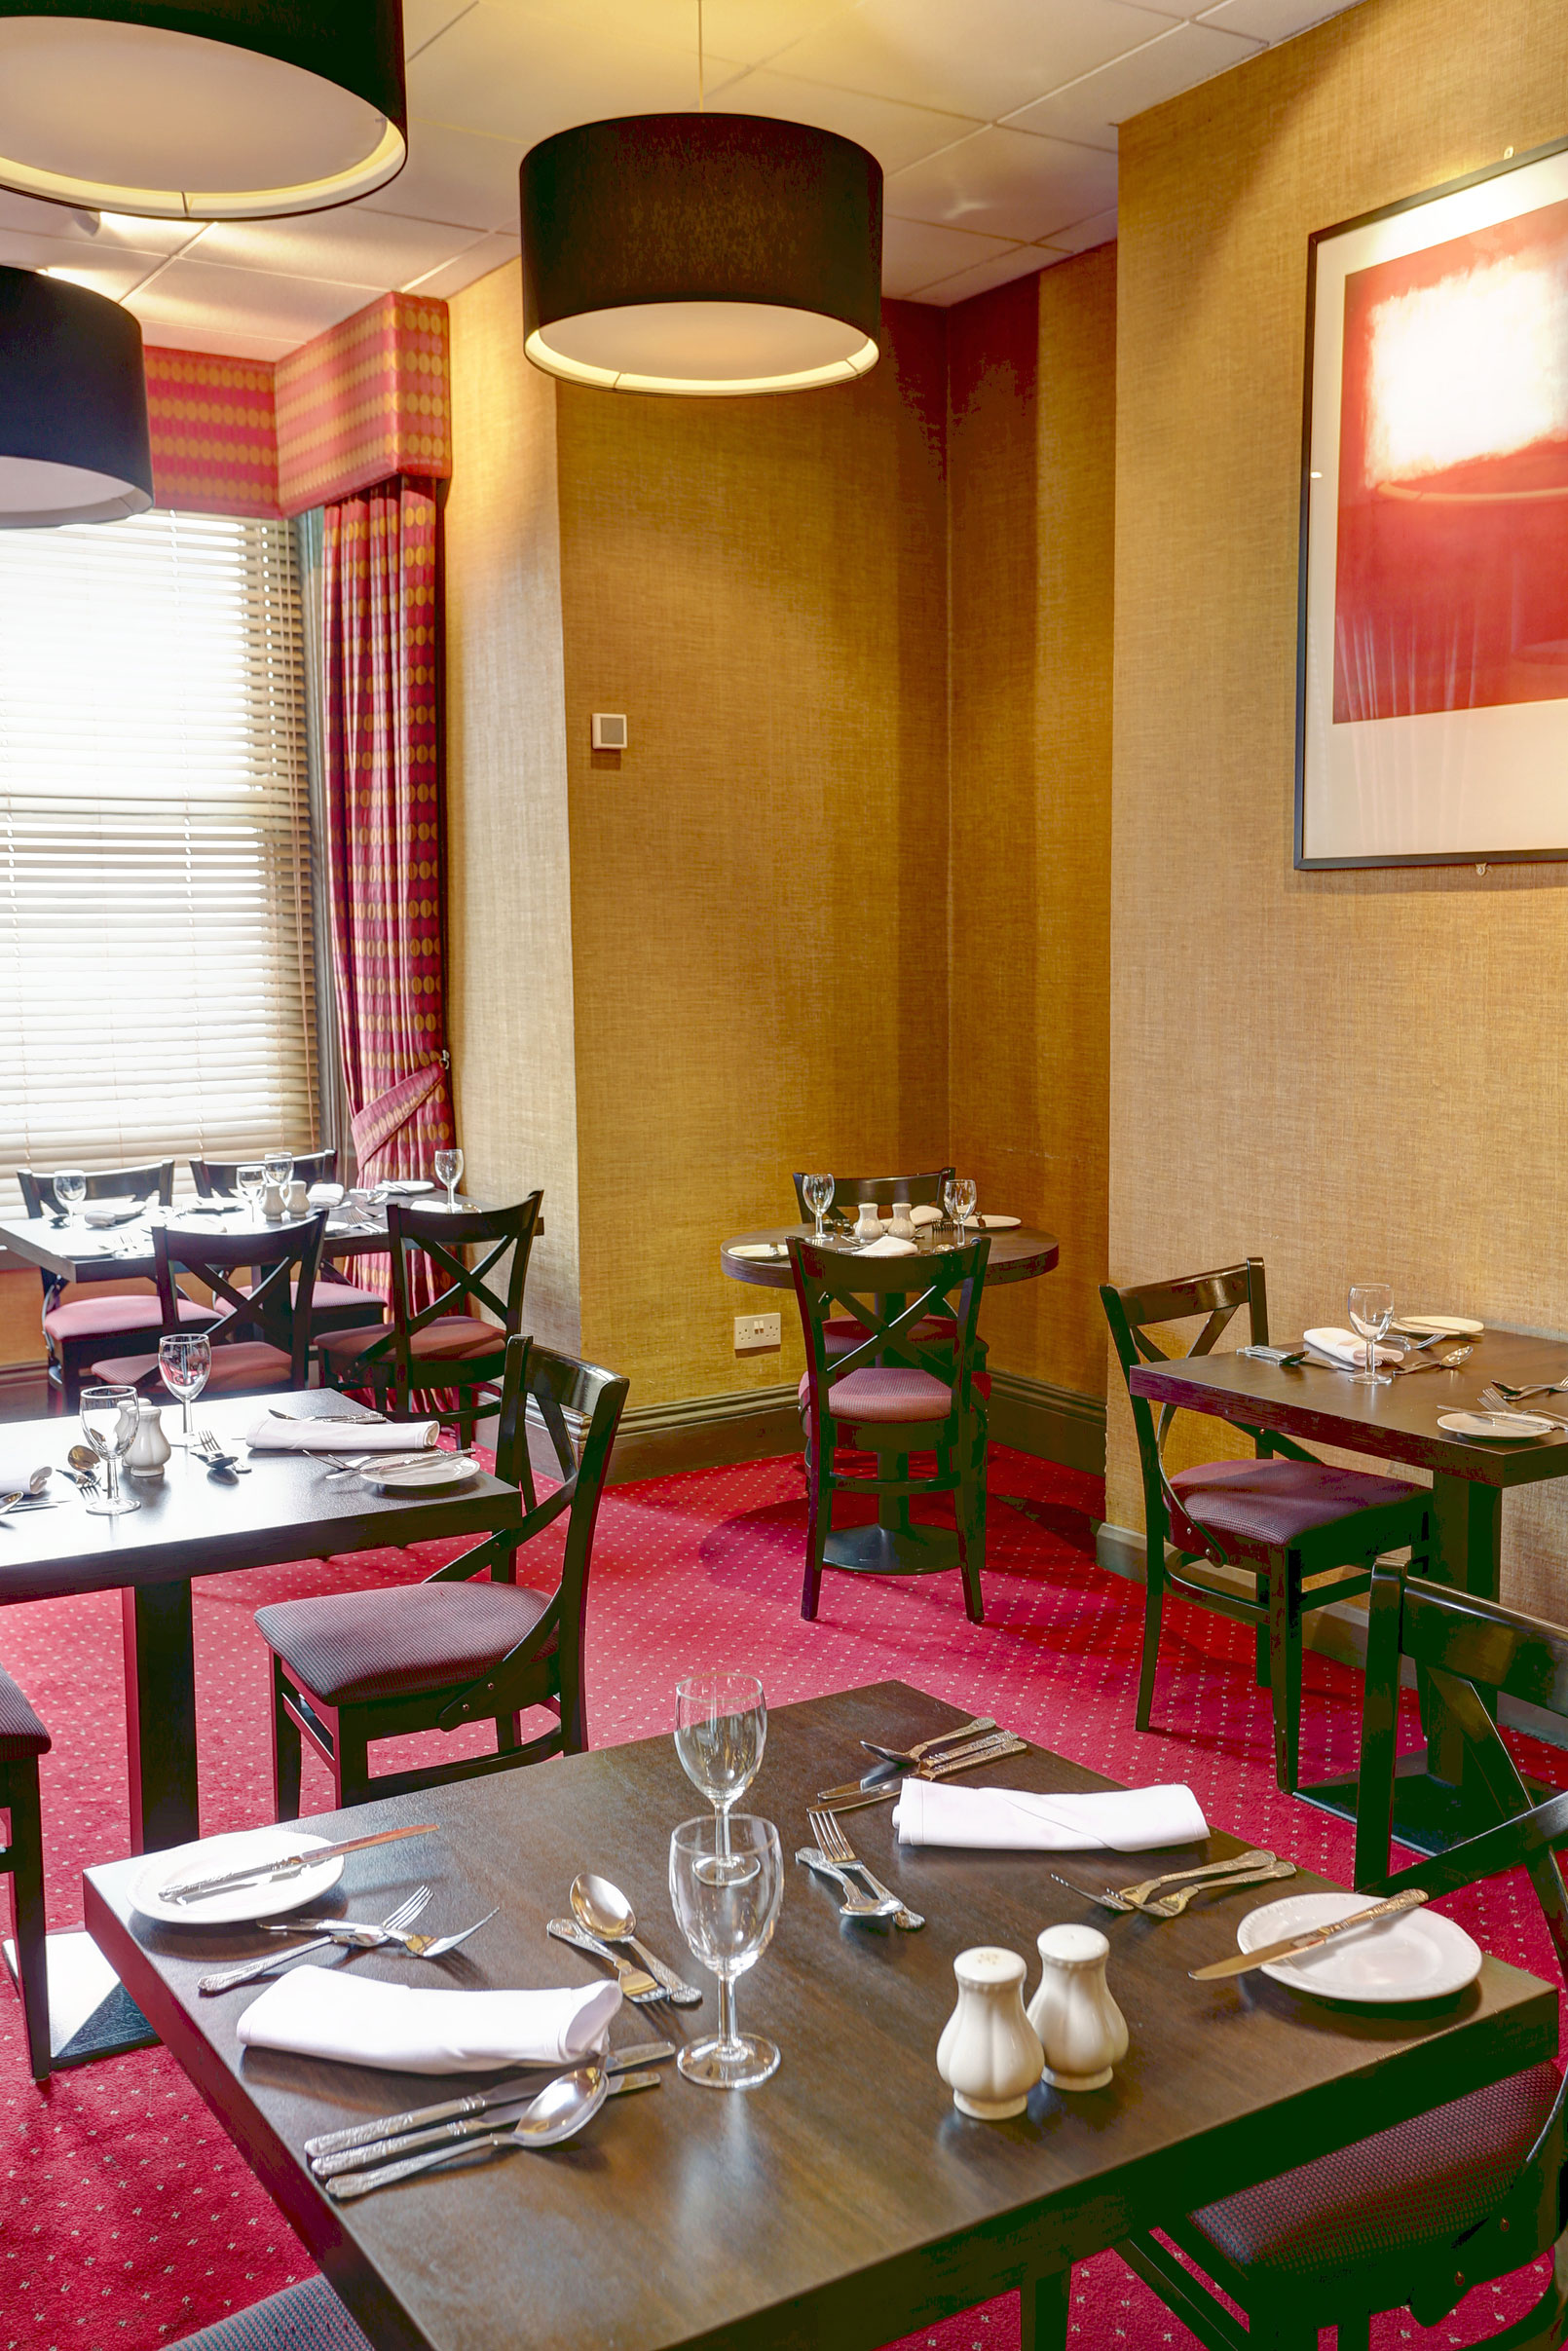 Best Western Hotel Room: Best Western Southport Seafront Royal Clifton Hotel & Spa